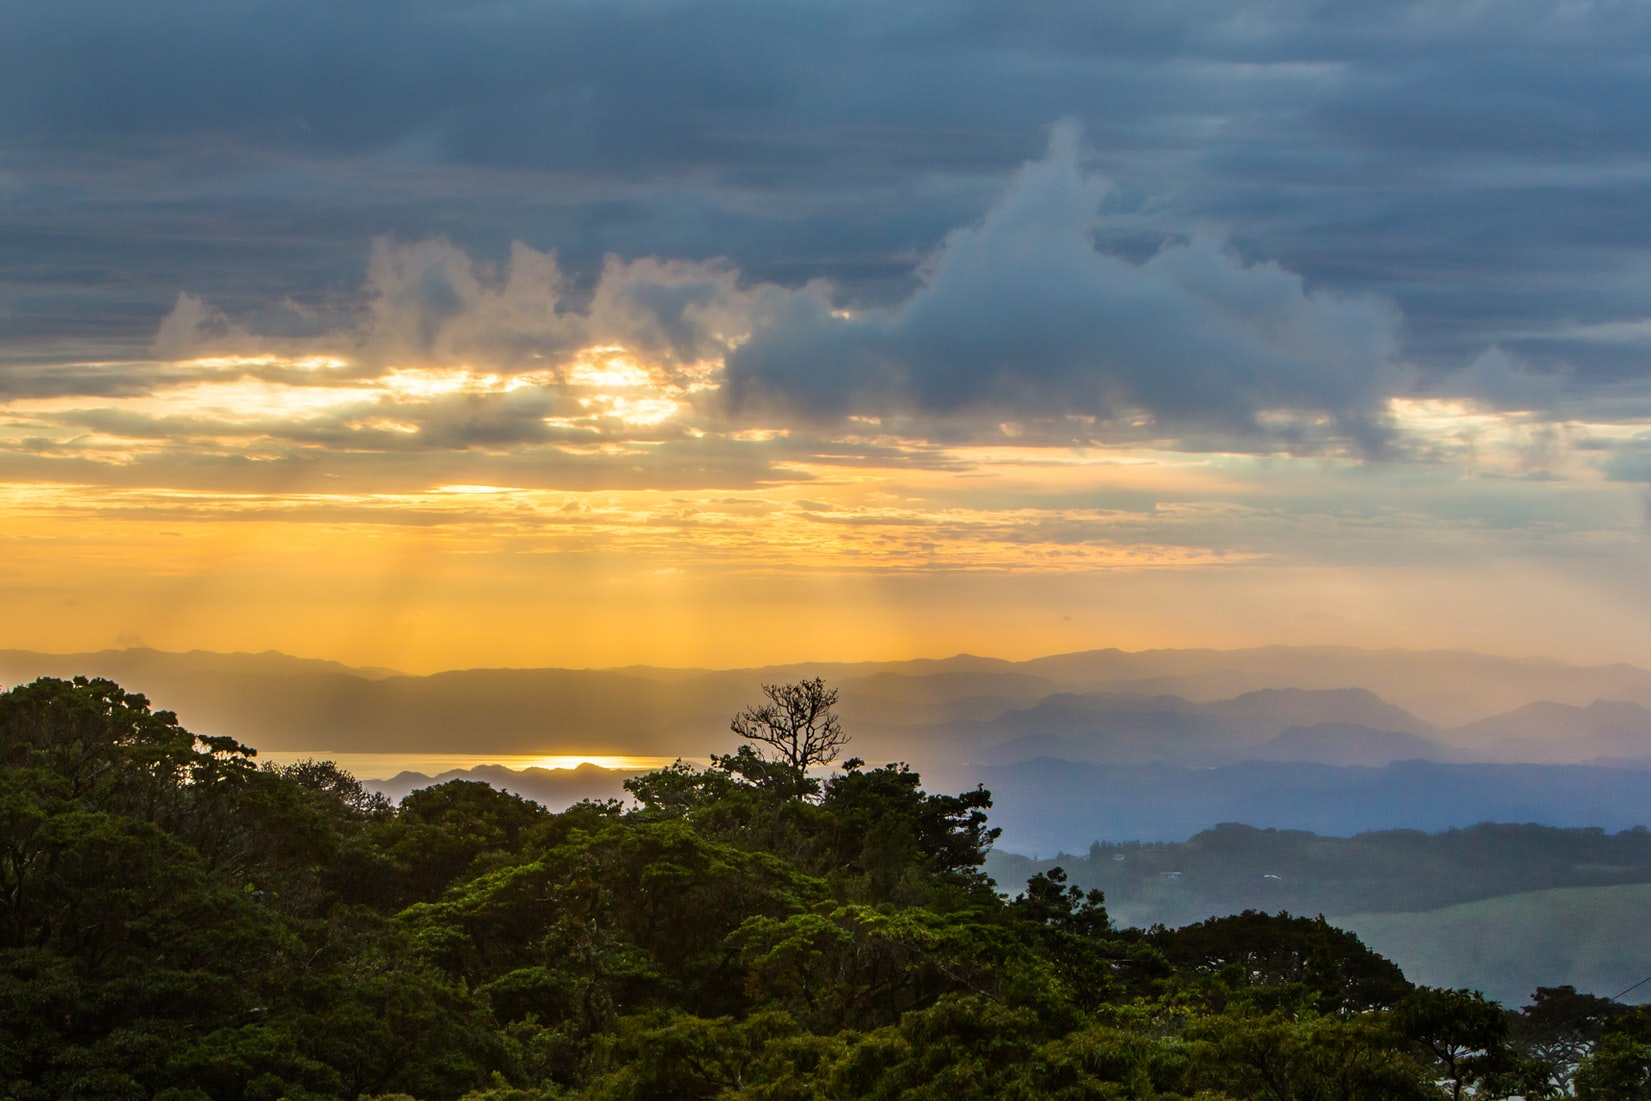 Sunset at Monteverde